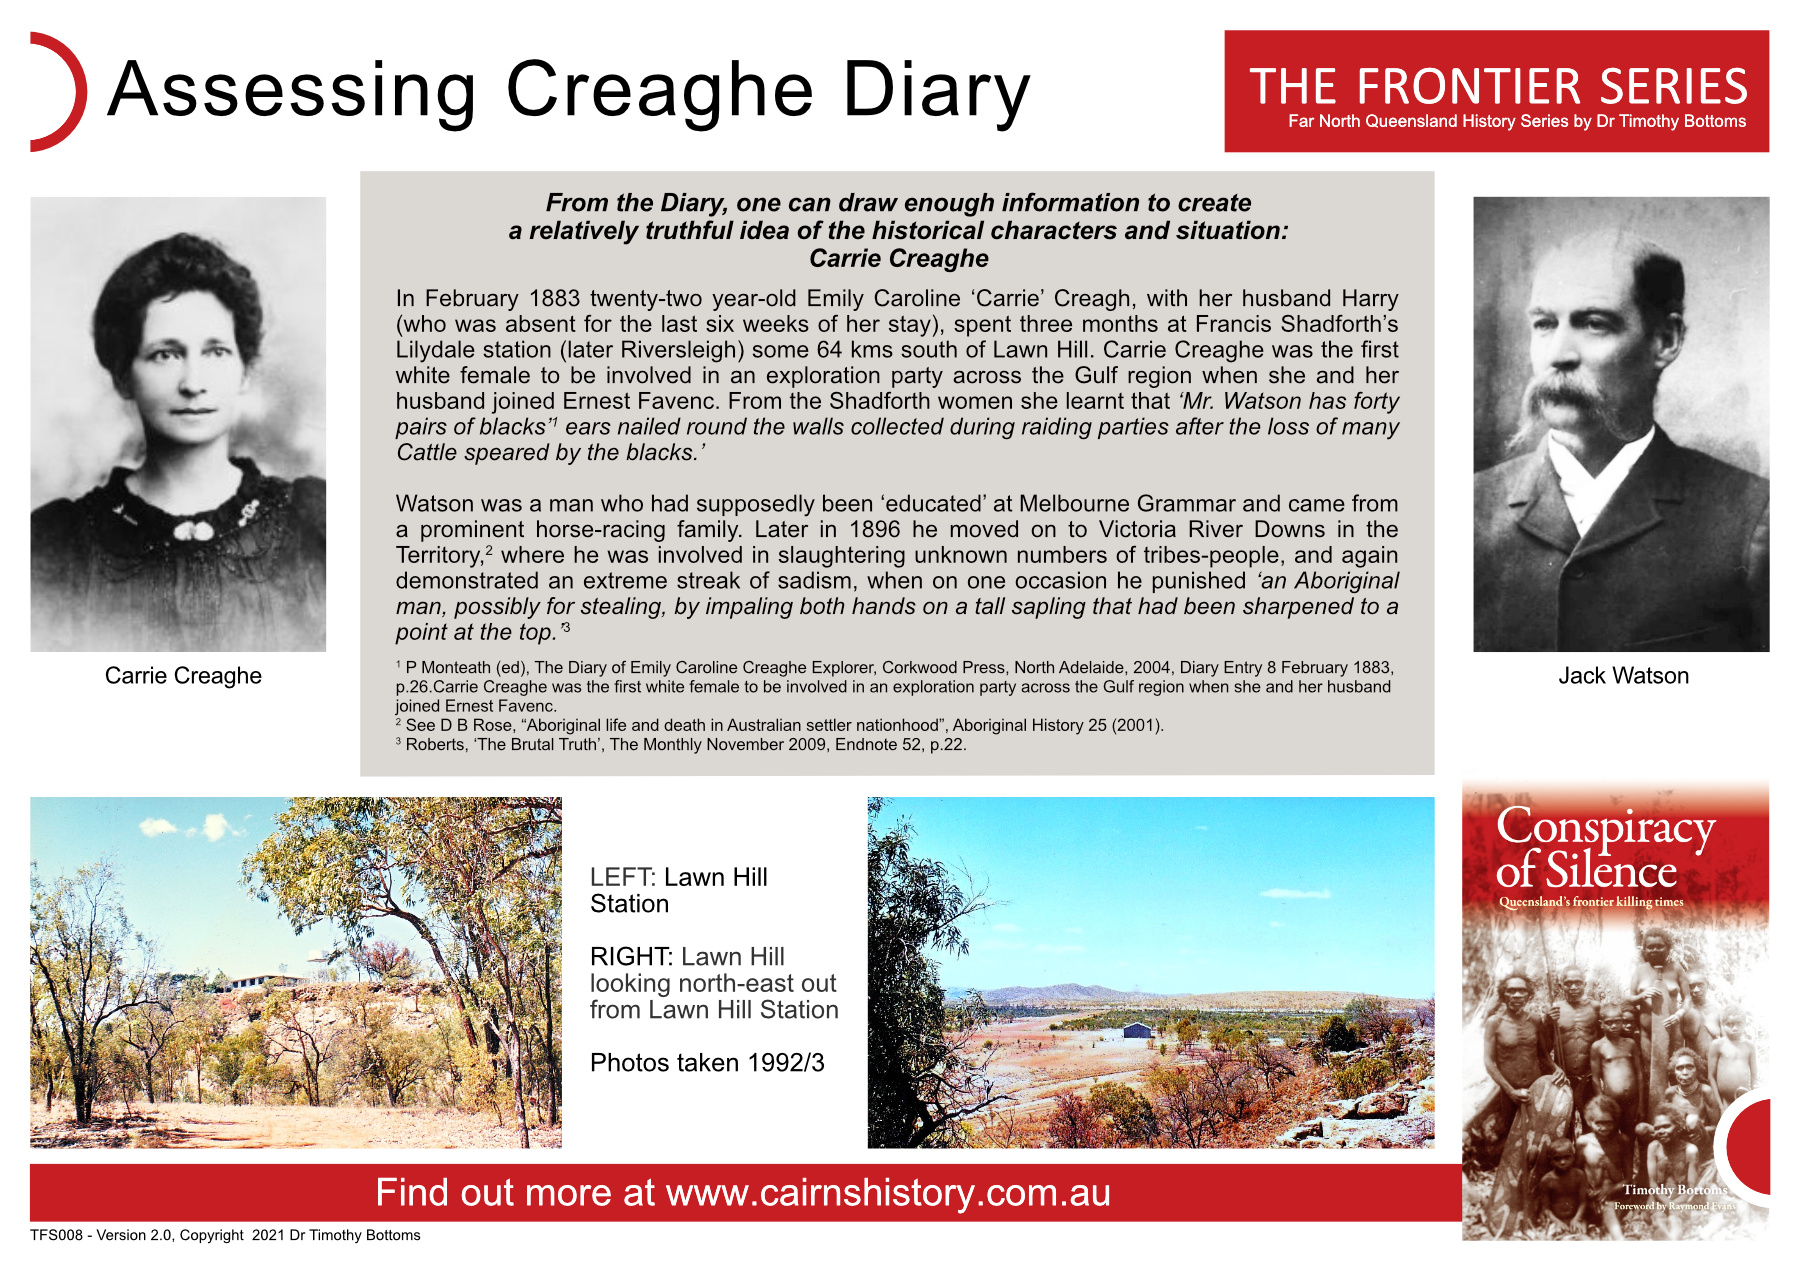 The Frontier Series Assessing Creaghe Diary